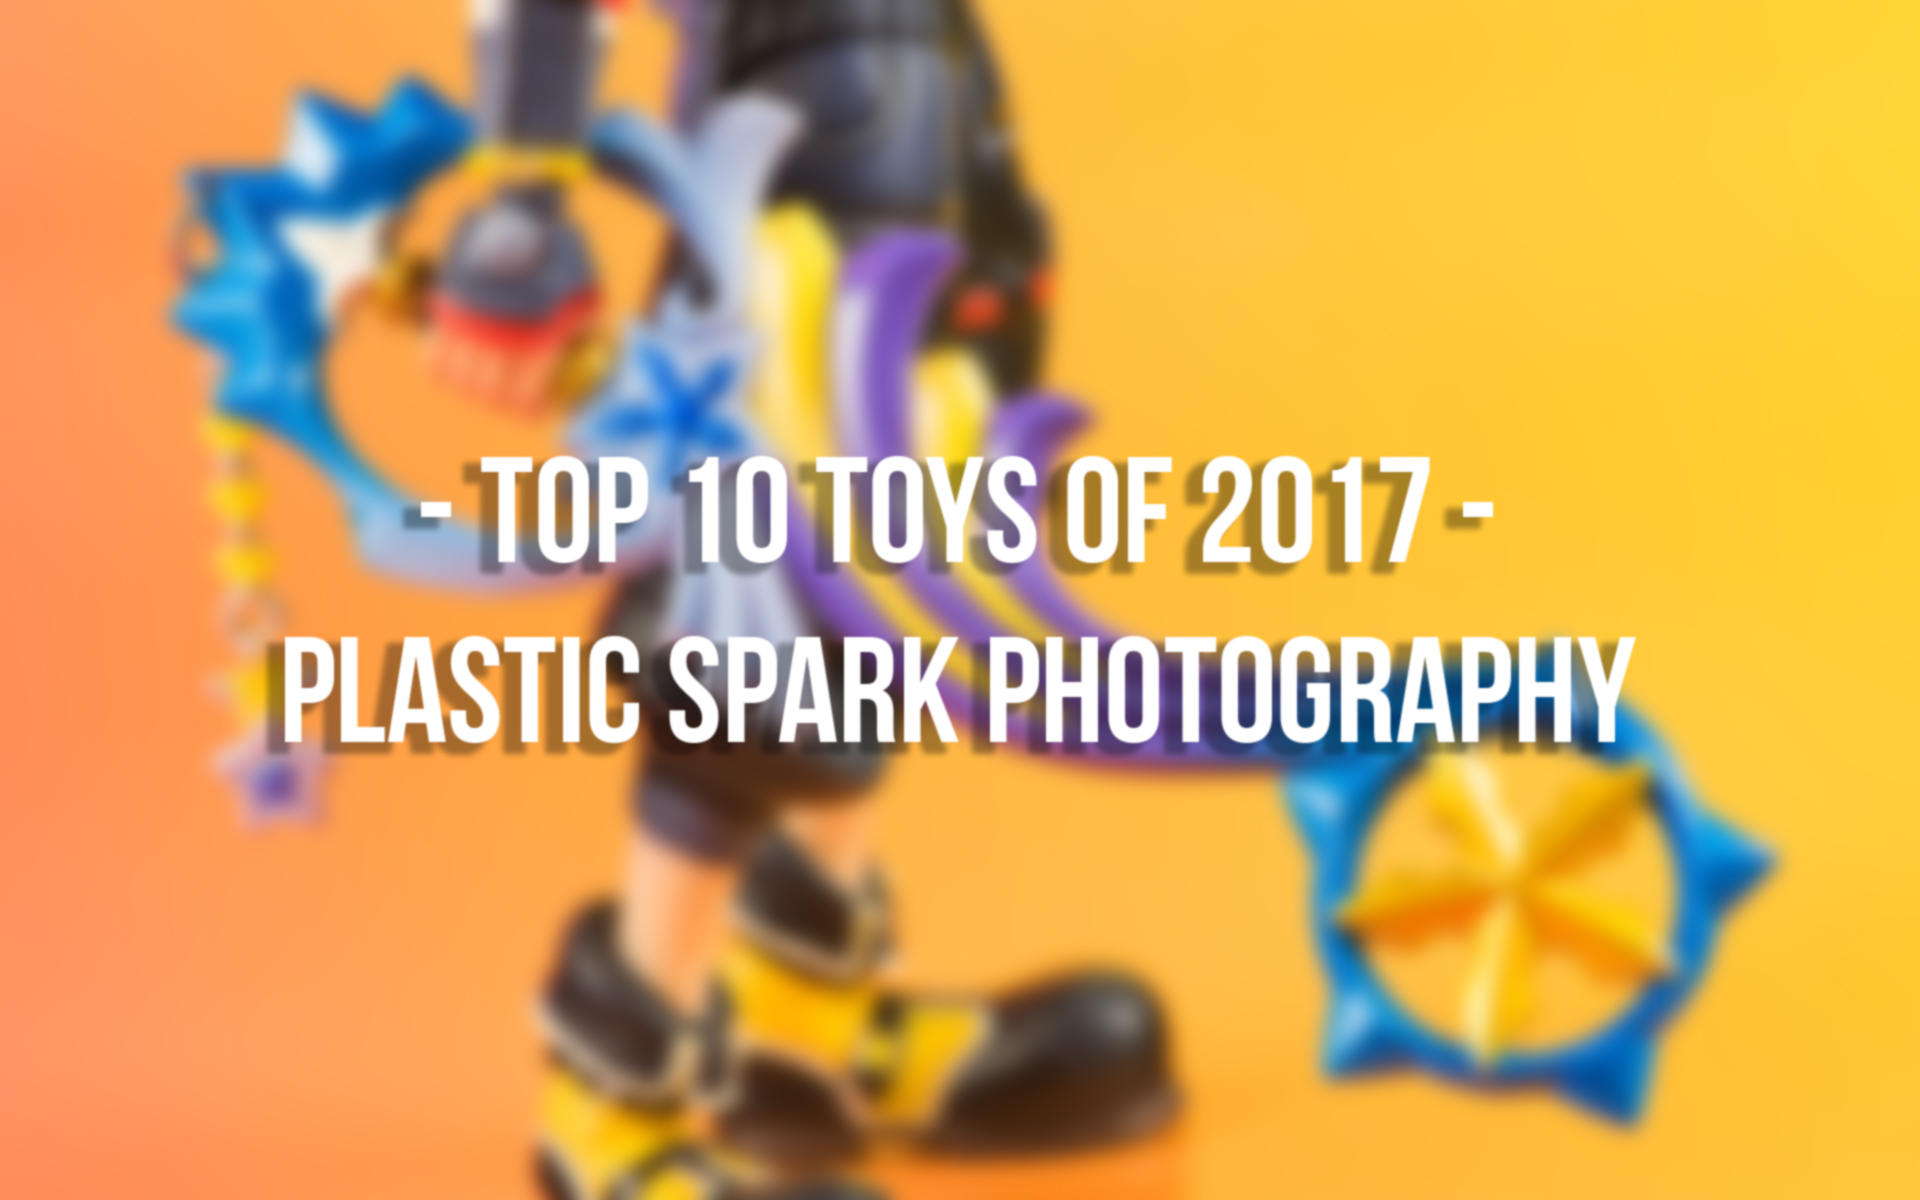 Top 10 Toys of 2017 Plastic Spark graphy — Plastic Spark